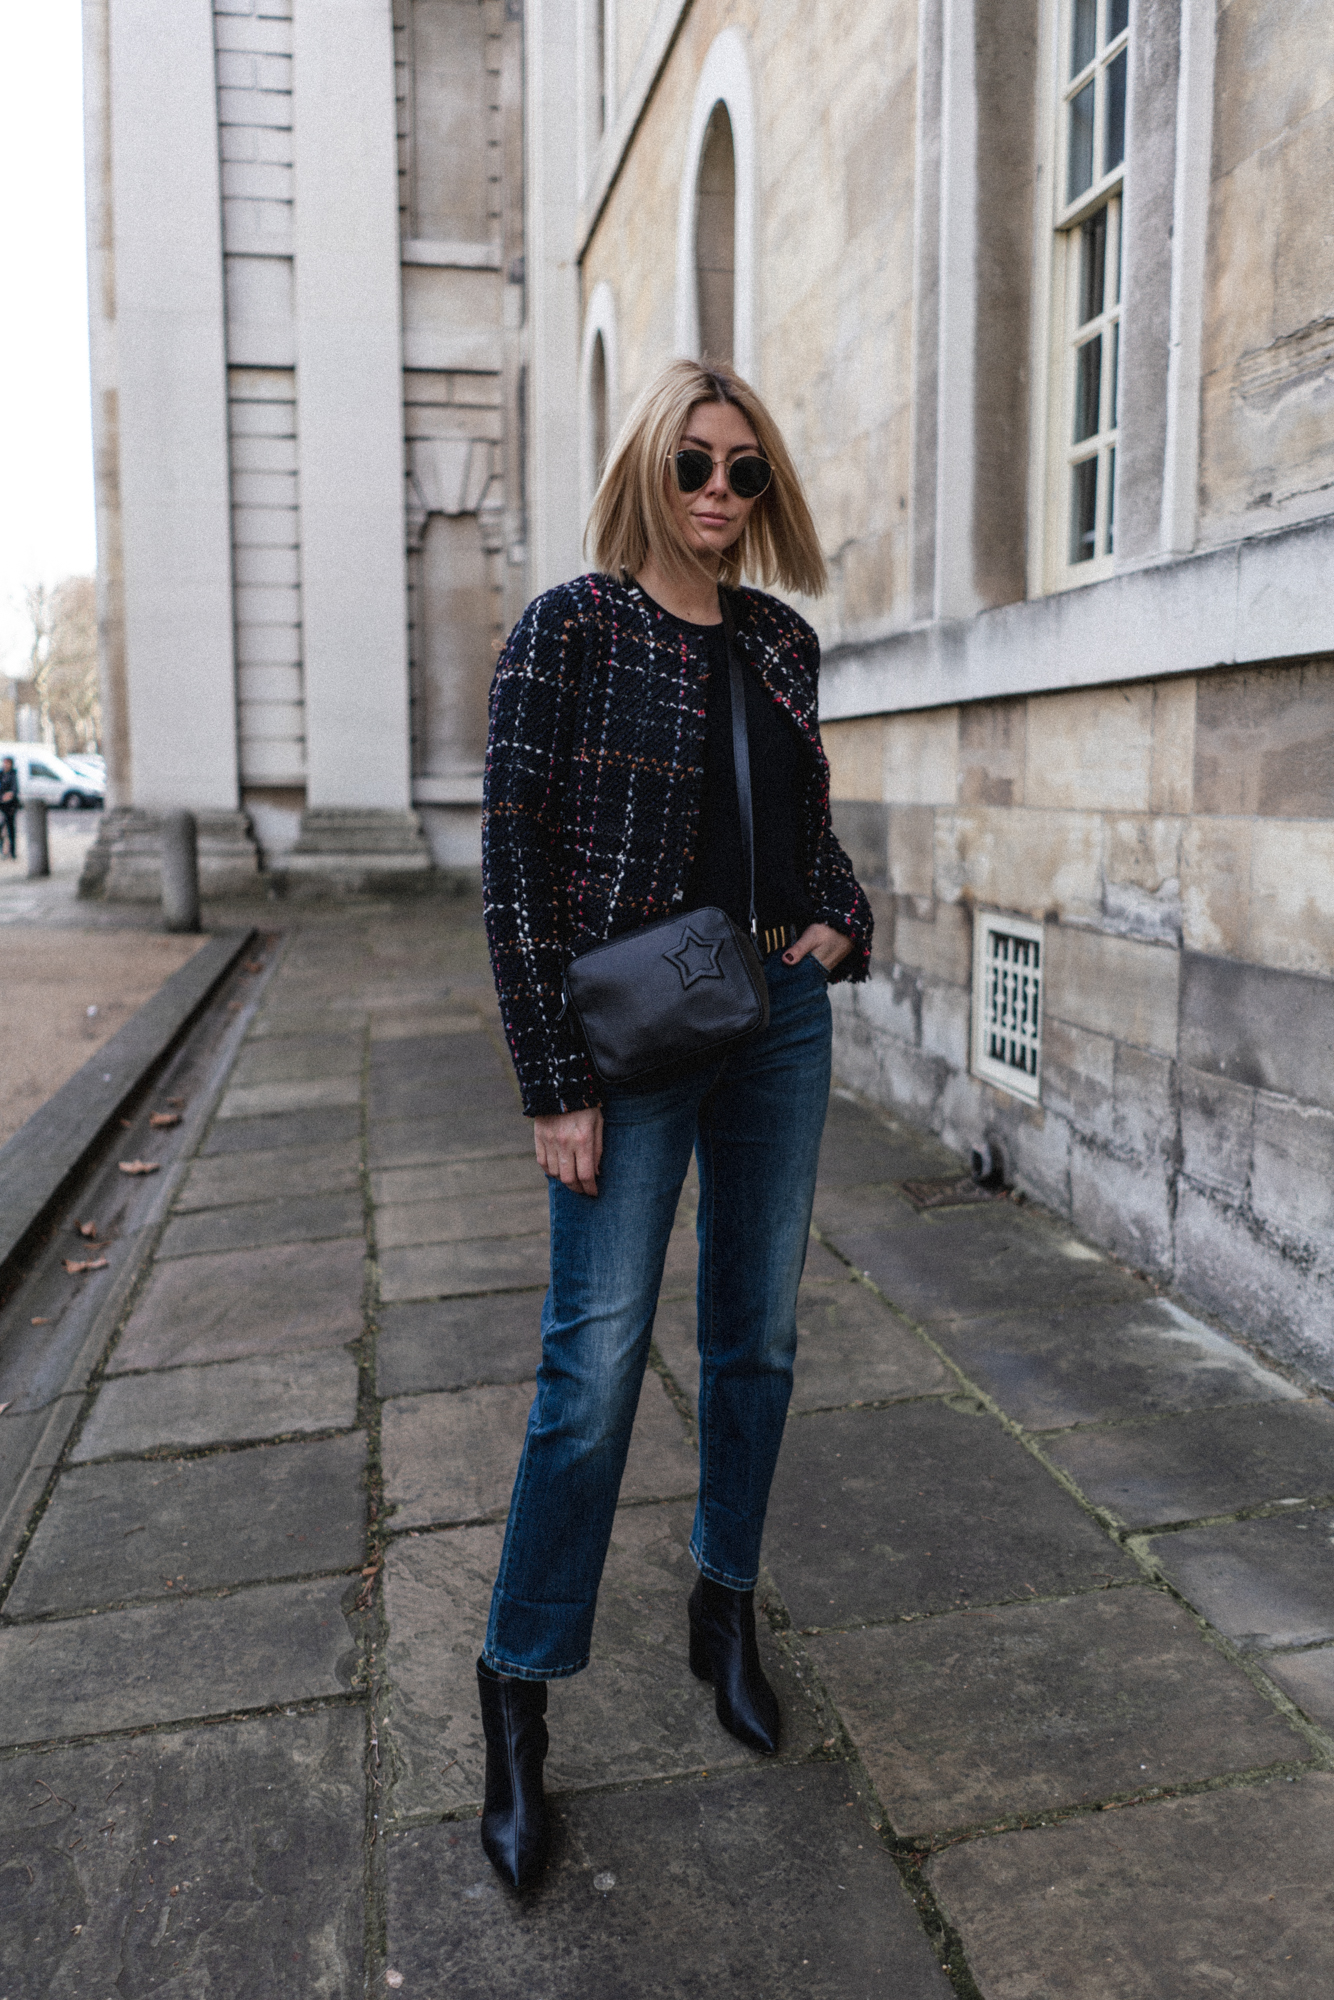 Emma Hill style. boucle teweed jacket blazer, black cross body bag, dark wash boyfriend jeans, black heeled ankle boots, london girl style, chic spring outfit